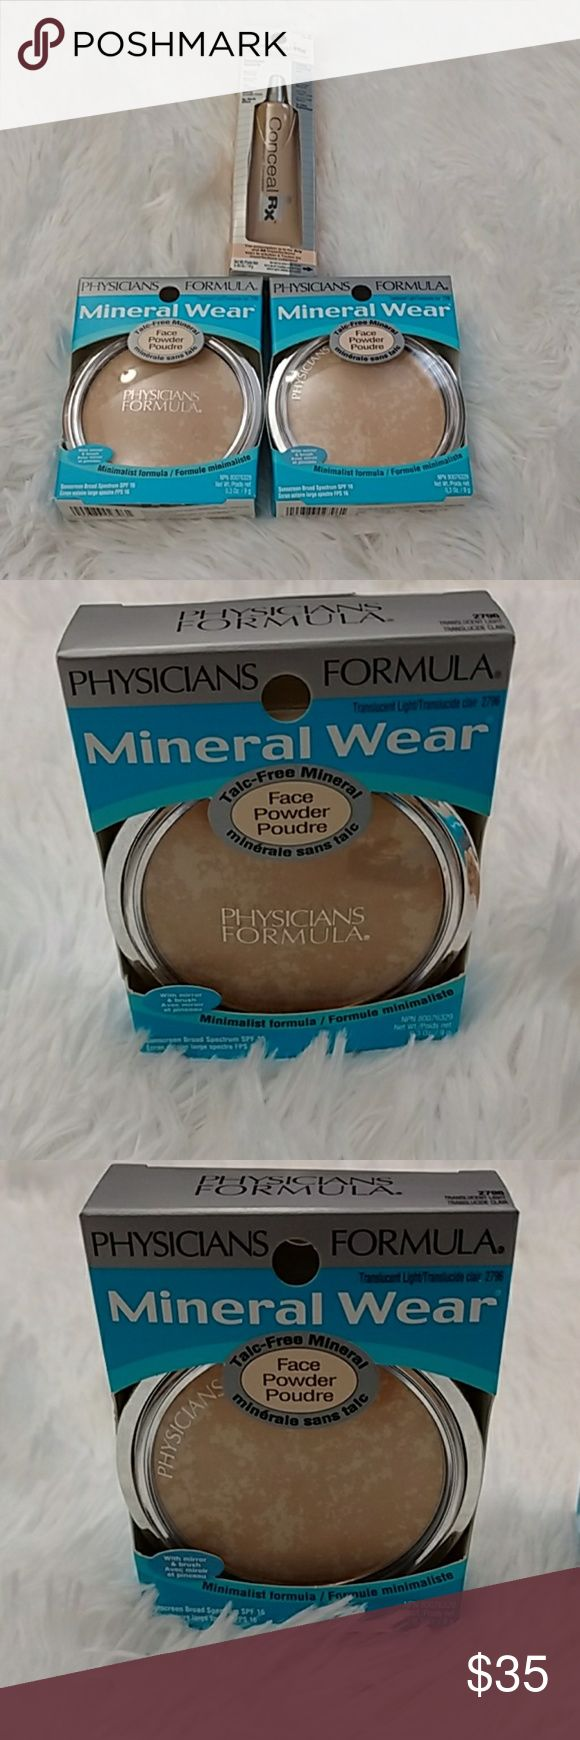 Physicians Formula Bundle New still in boxes 2 mineral